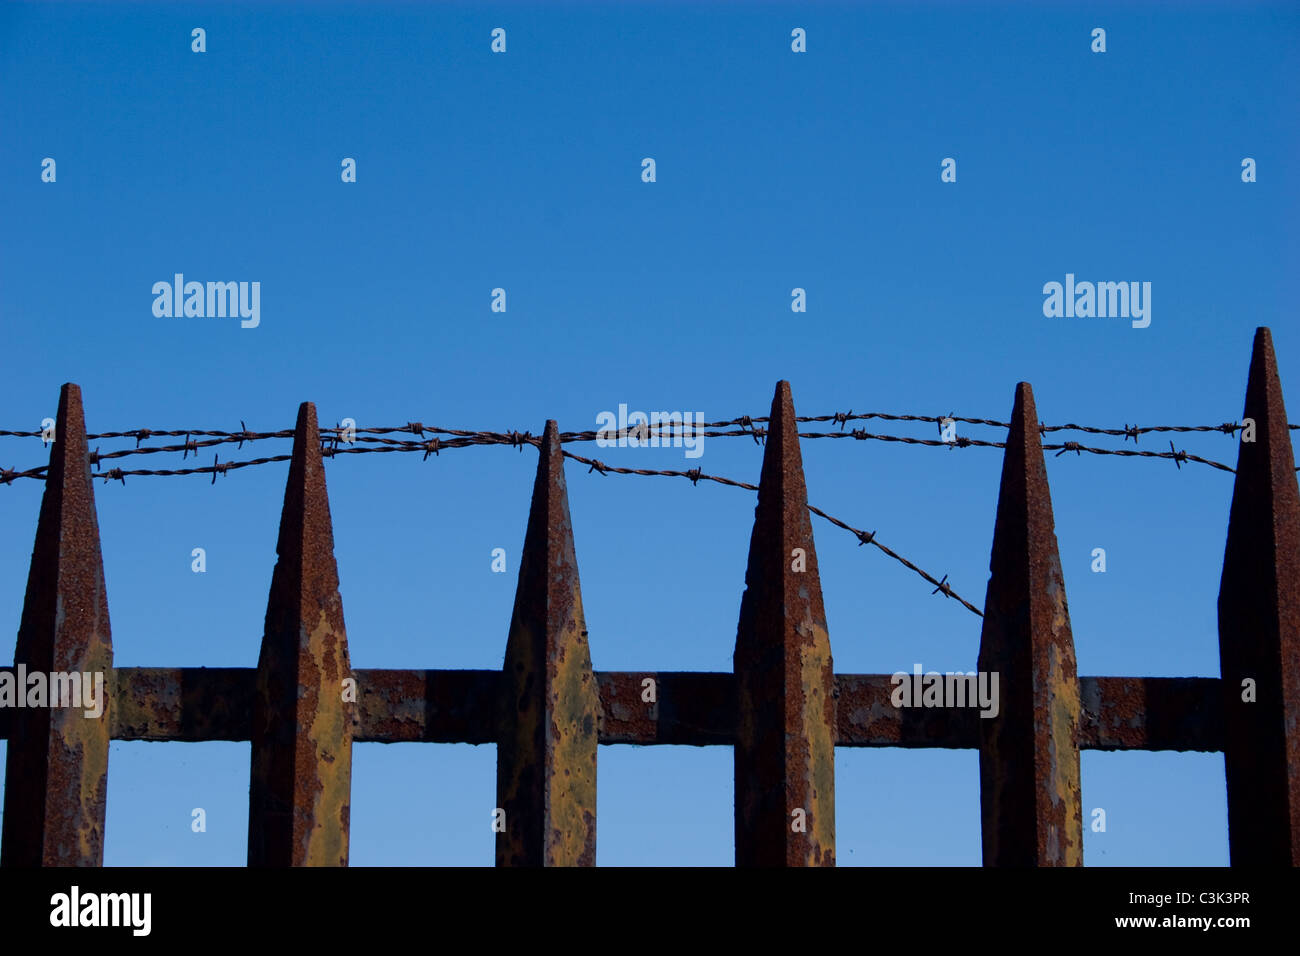 security fence rust spike top barb wire blue sky row keep out deterrent safe block sharp injury do not enter - Stock Image